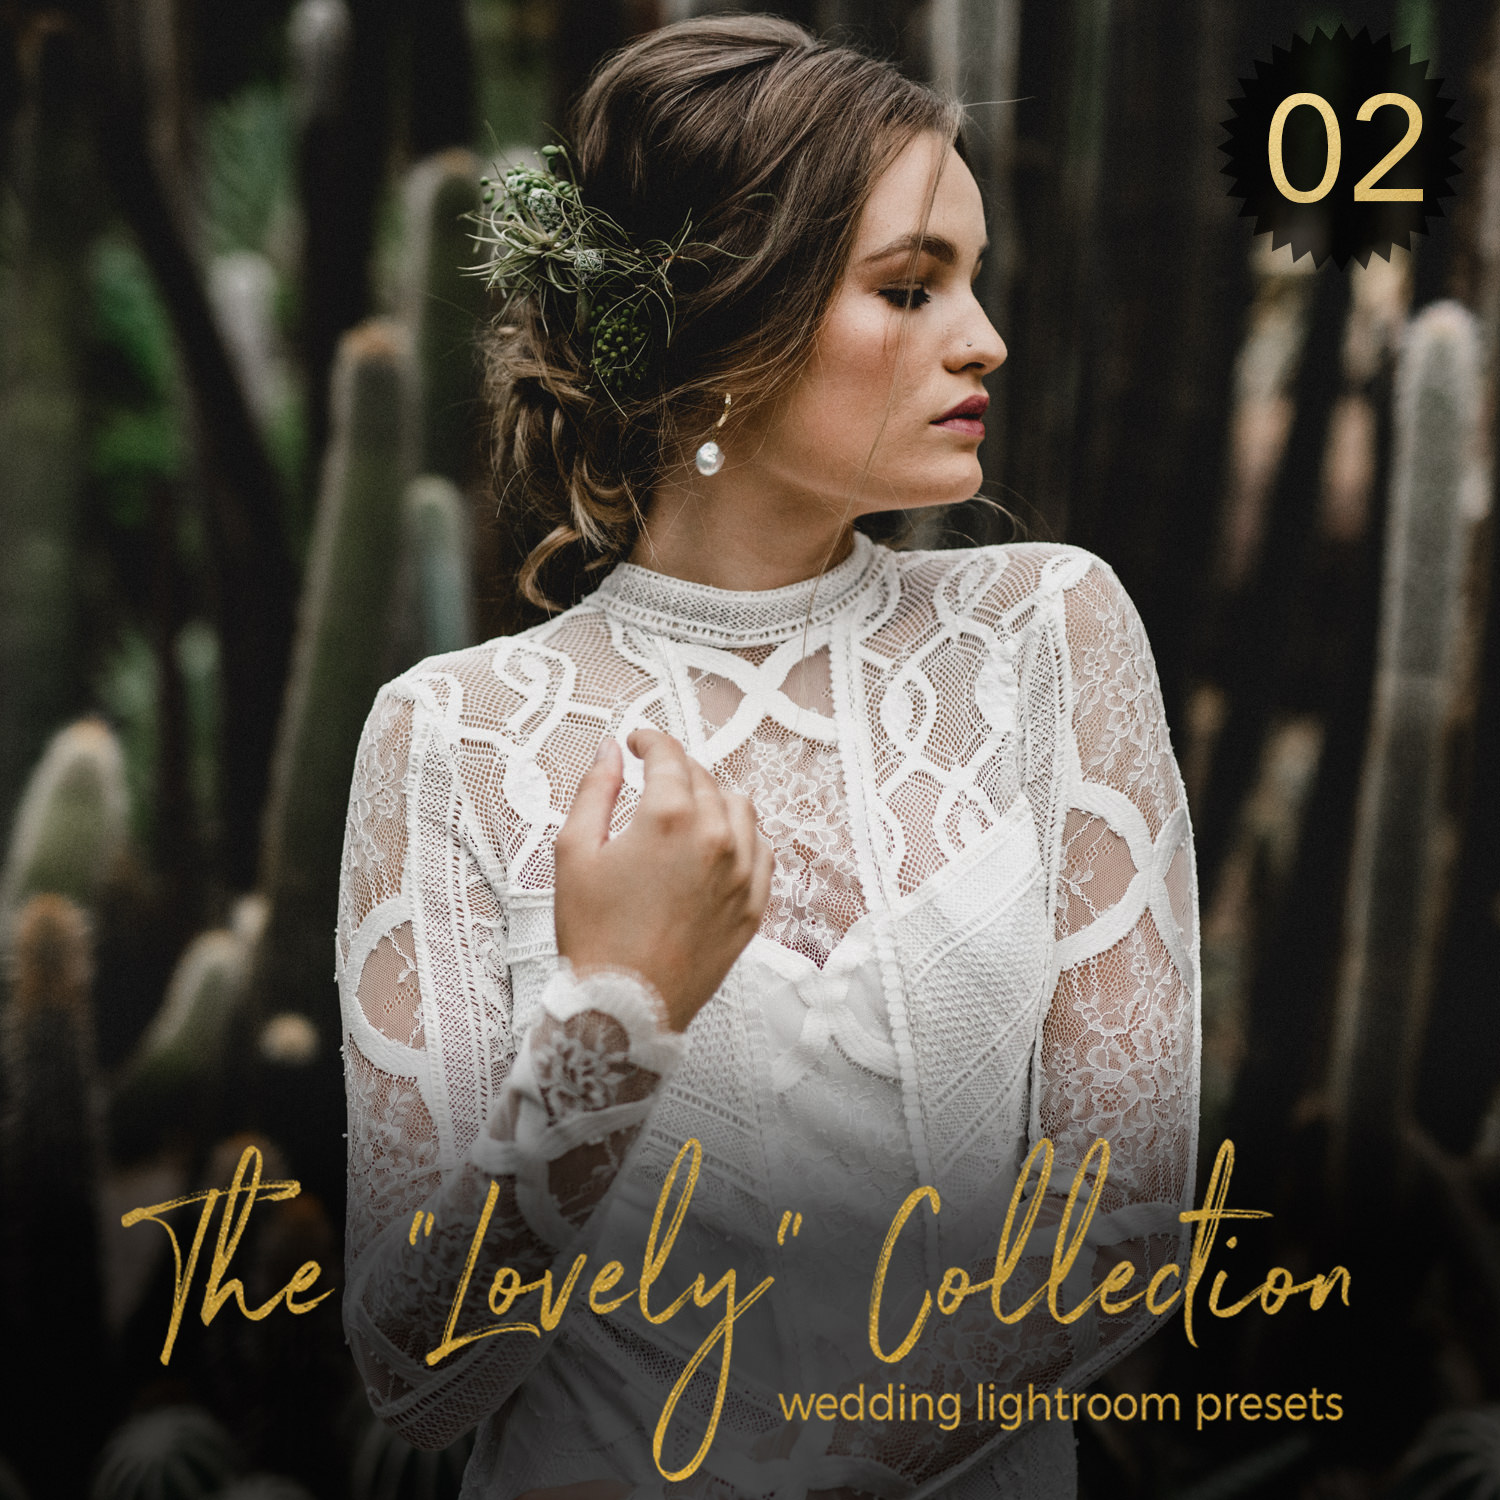 Lightroom Presets, Wedding presets, vsco inspired, Adobe filters, Adobe ACR presets, film inspired presets